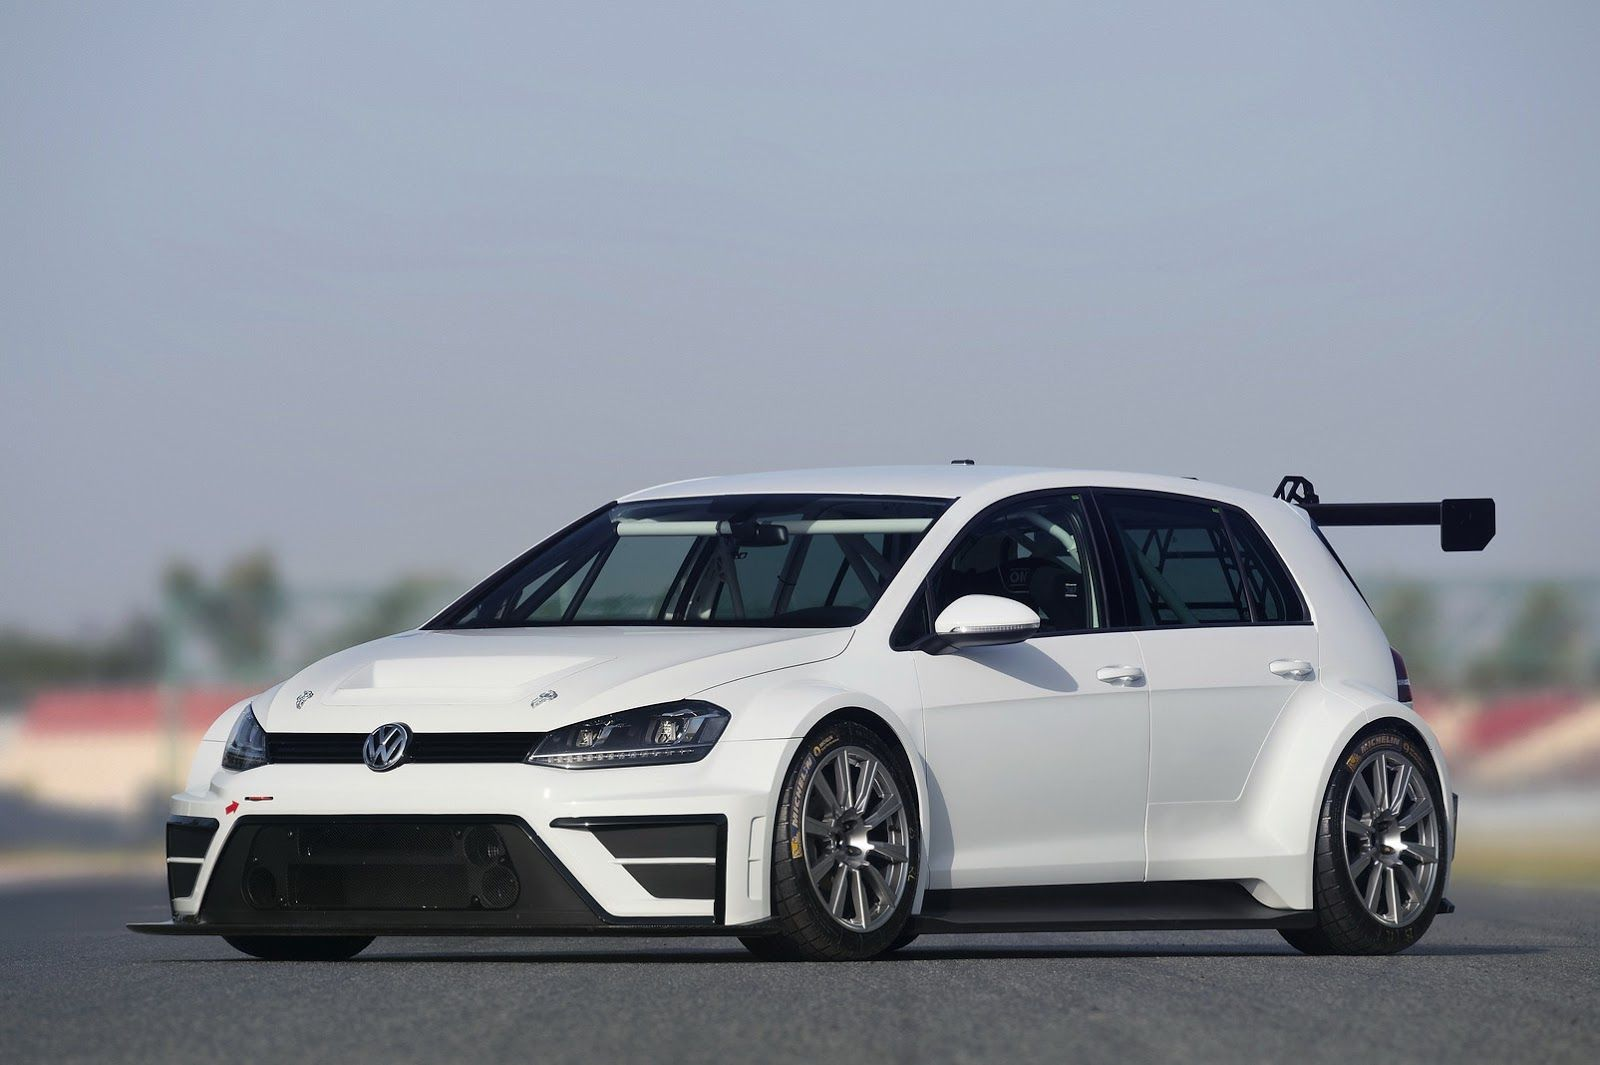 330 HP Volkswagen Golf GTI TCR HD Wallpaper From Gallsourcecom